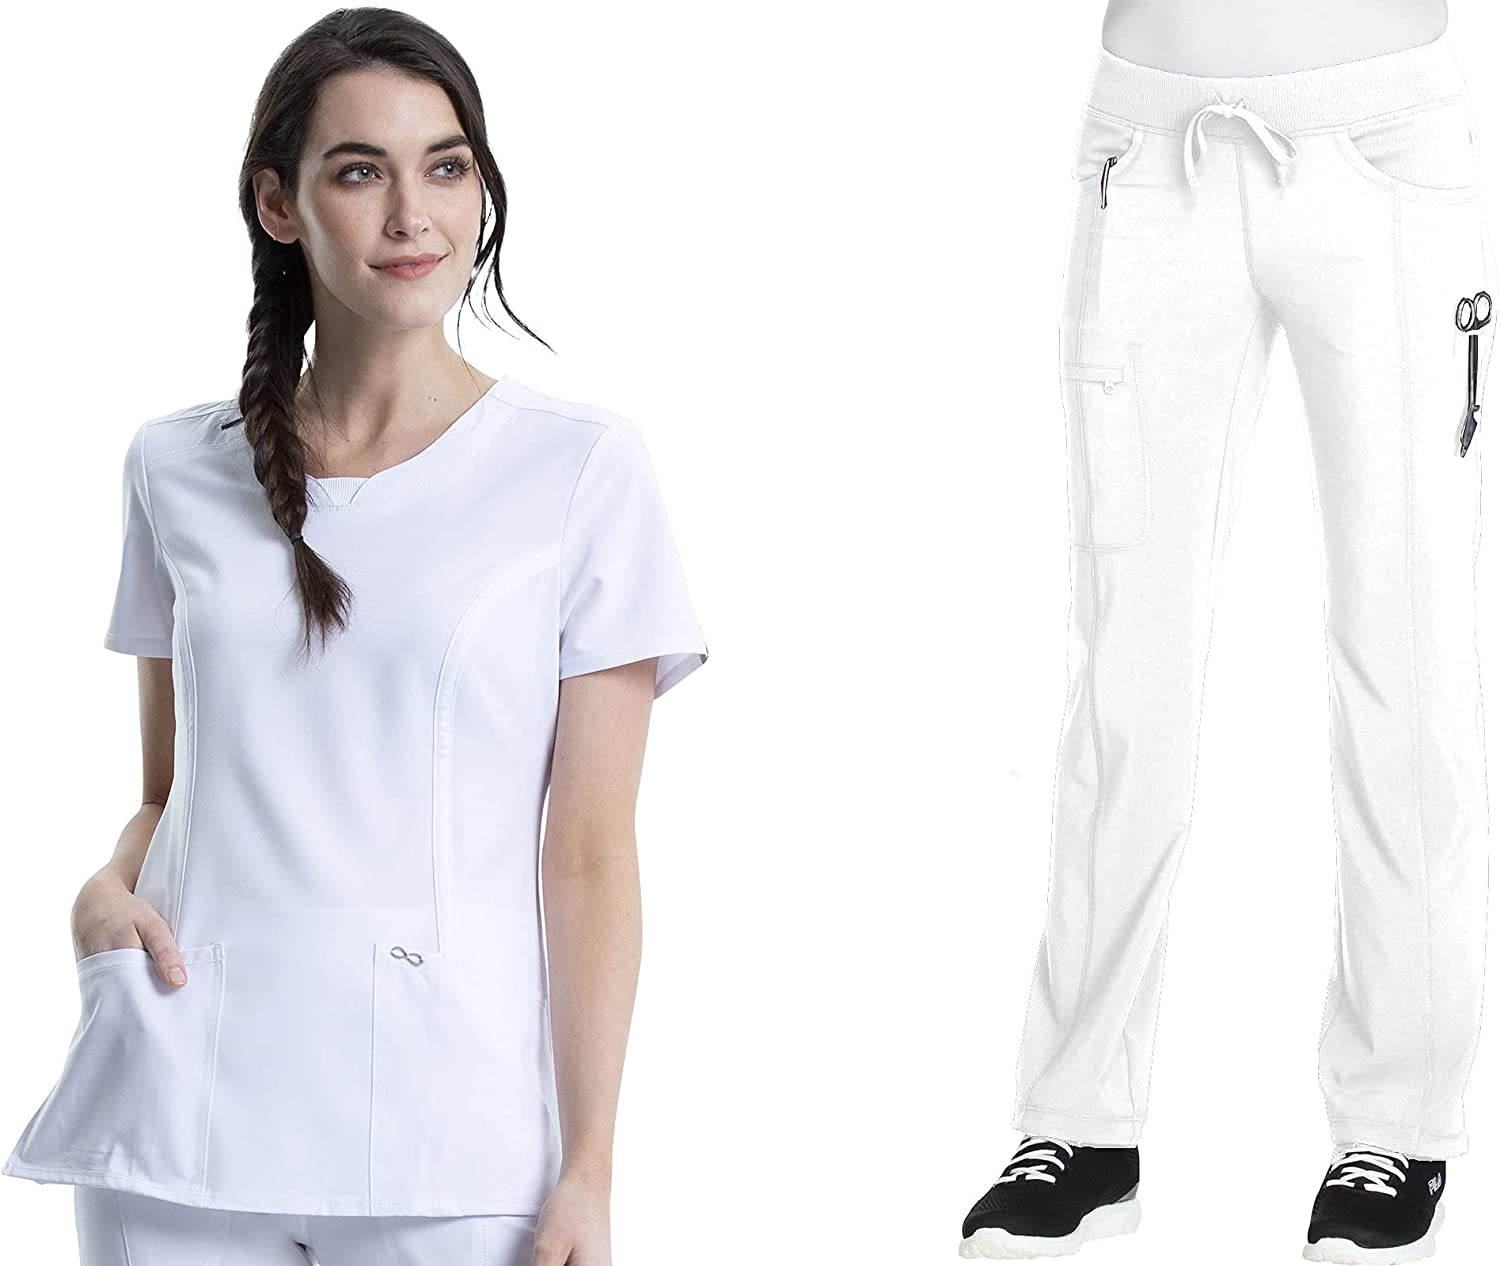 Infinity Max 53% OFF Credence Women Scrubs Set Round Drawstring Top Pant 2624A Neck